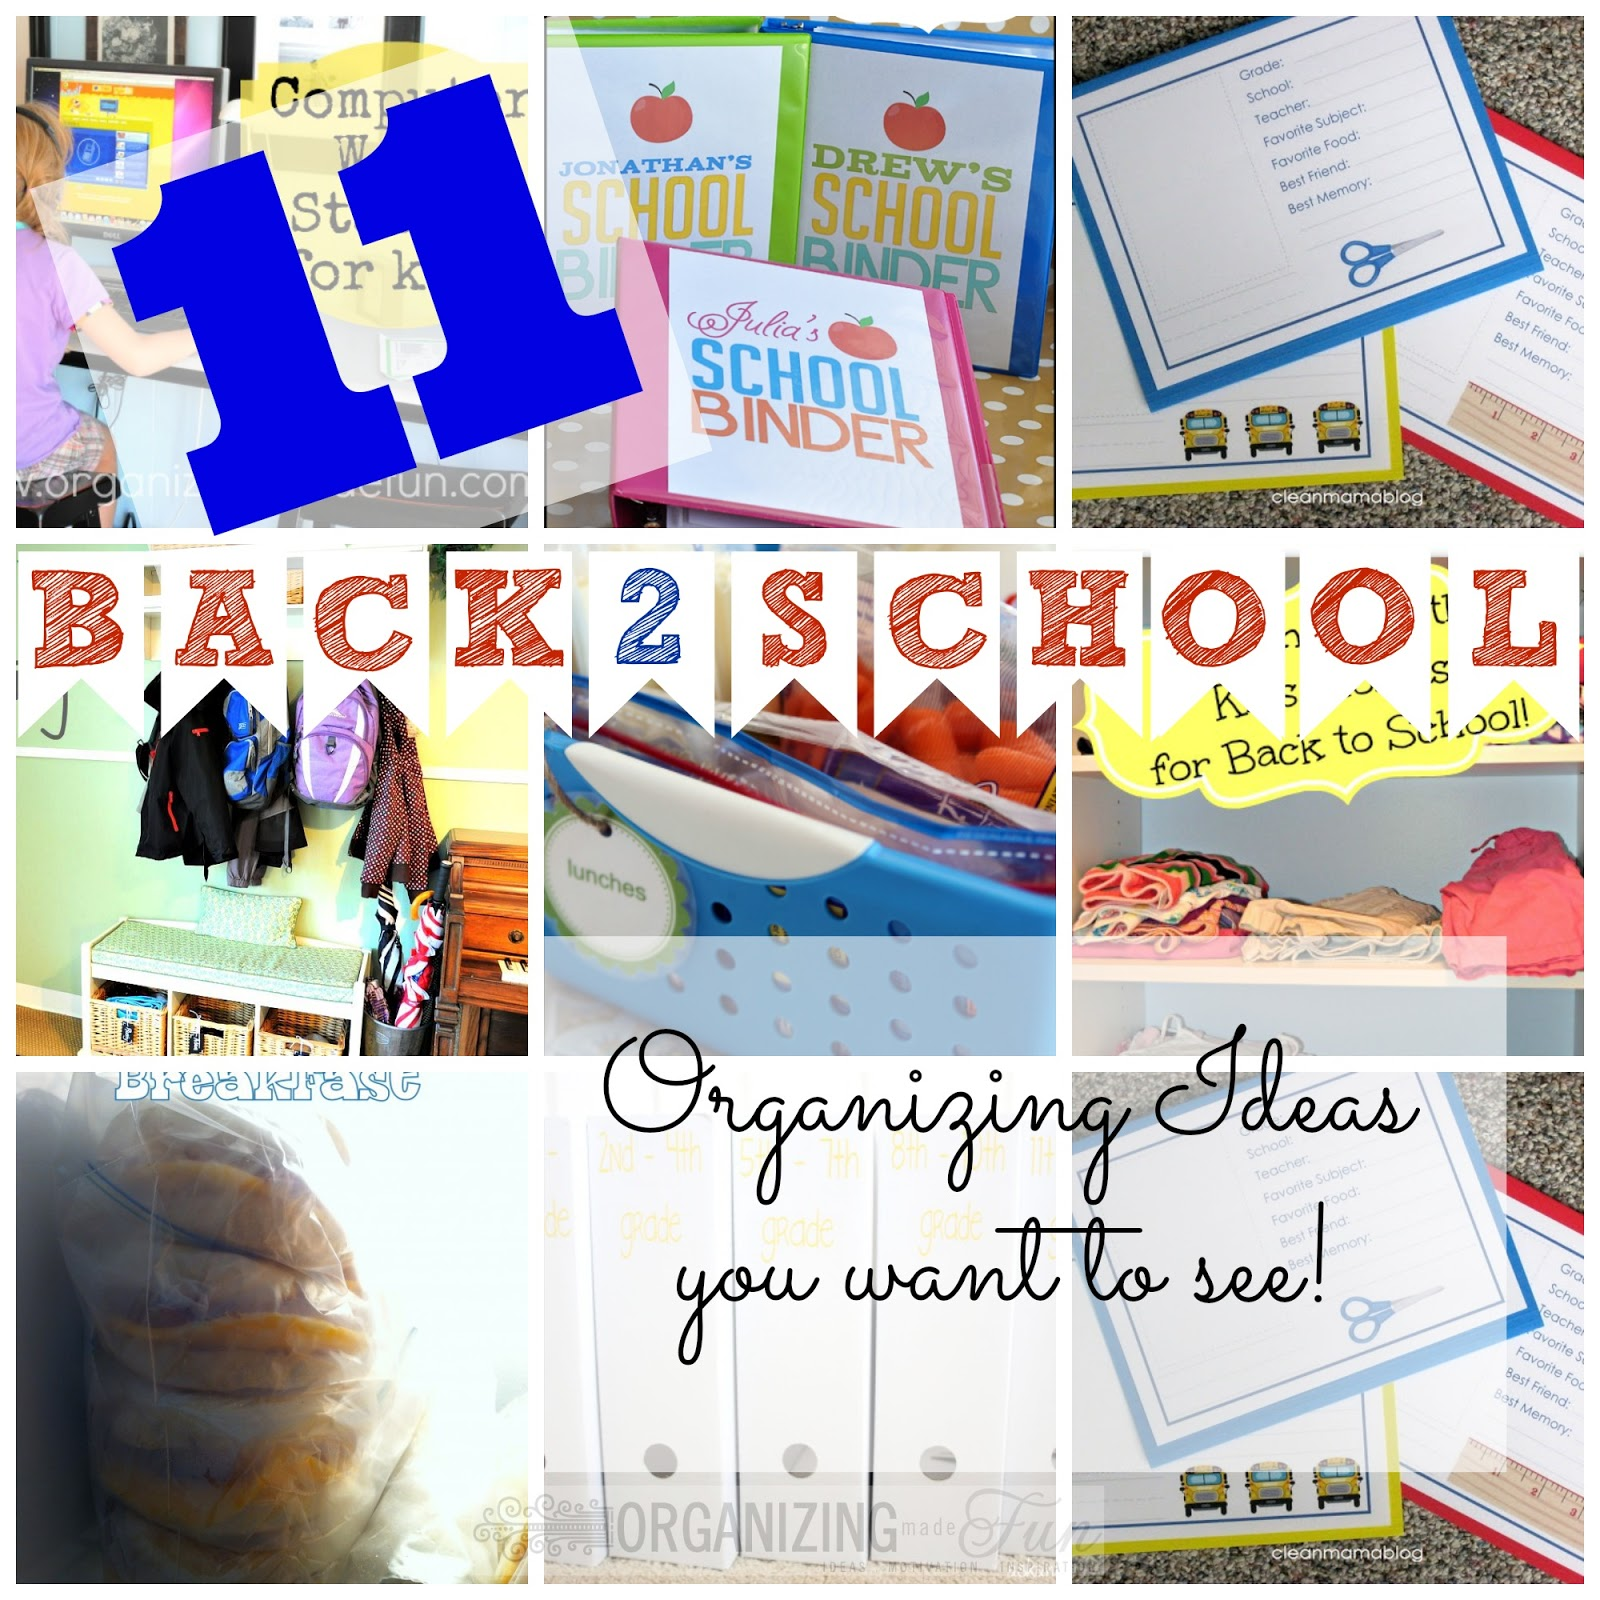 Perfectly Organized What Organizing Made Fun: 11 Back To School Organizing Ideas You Want To See